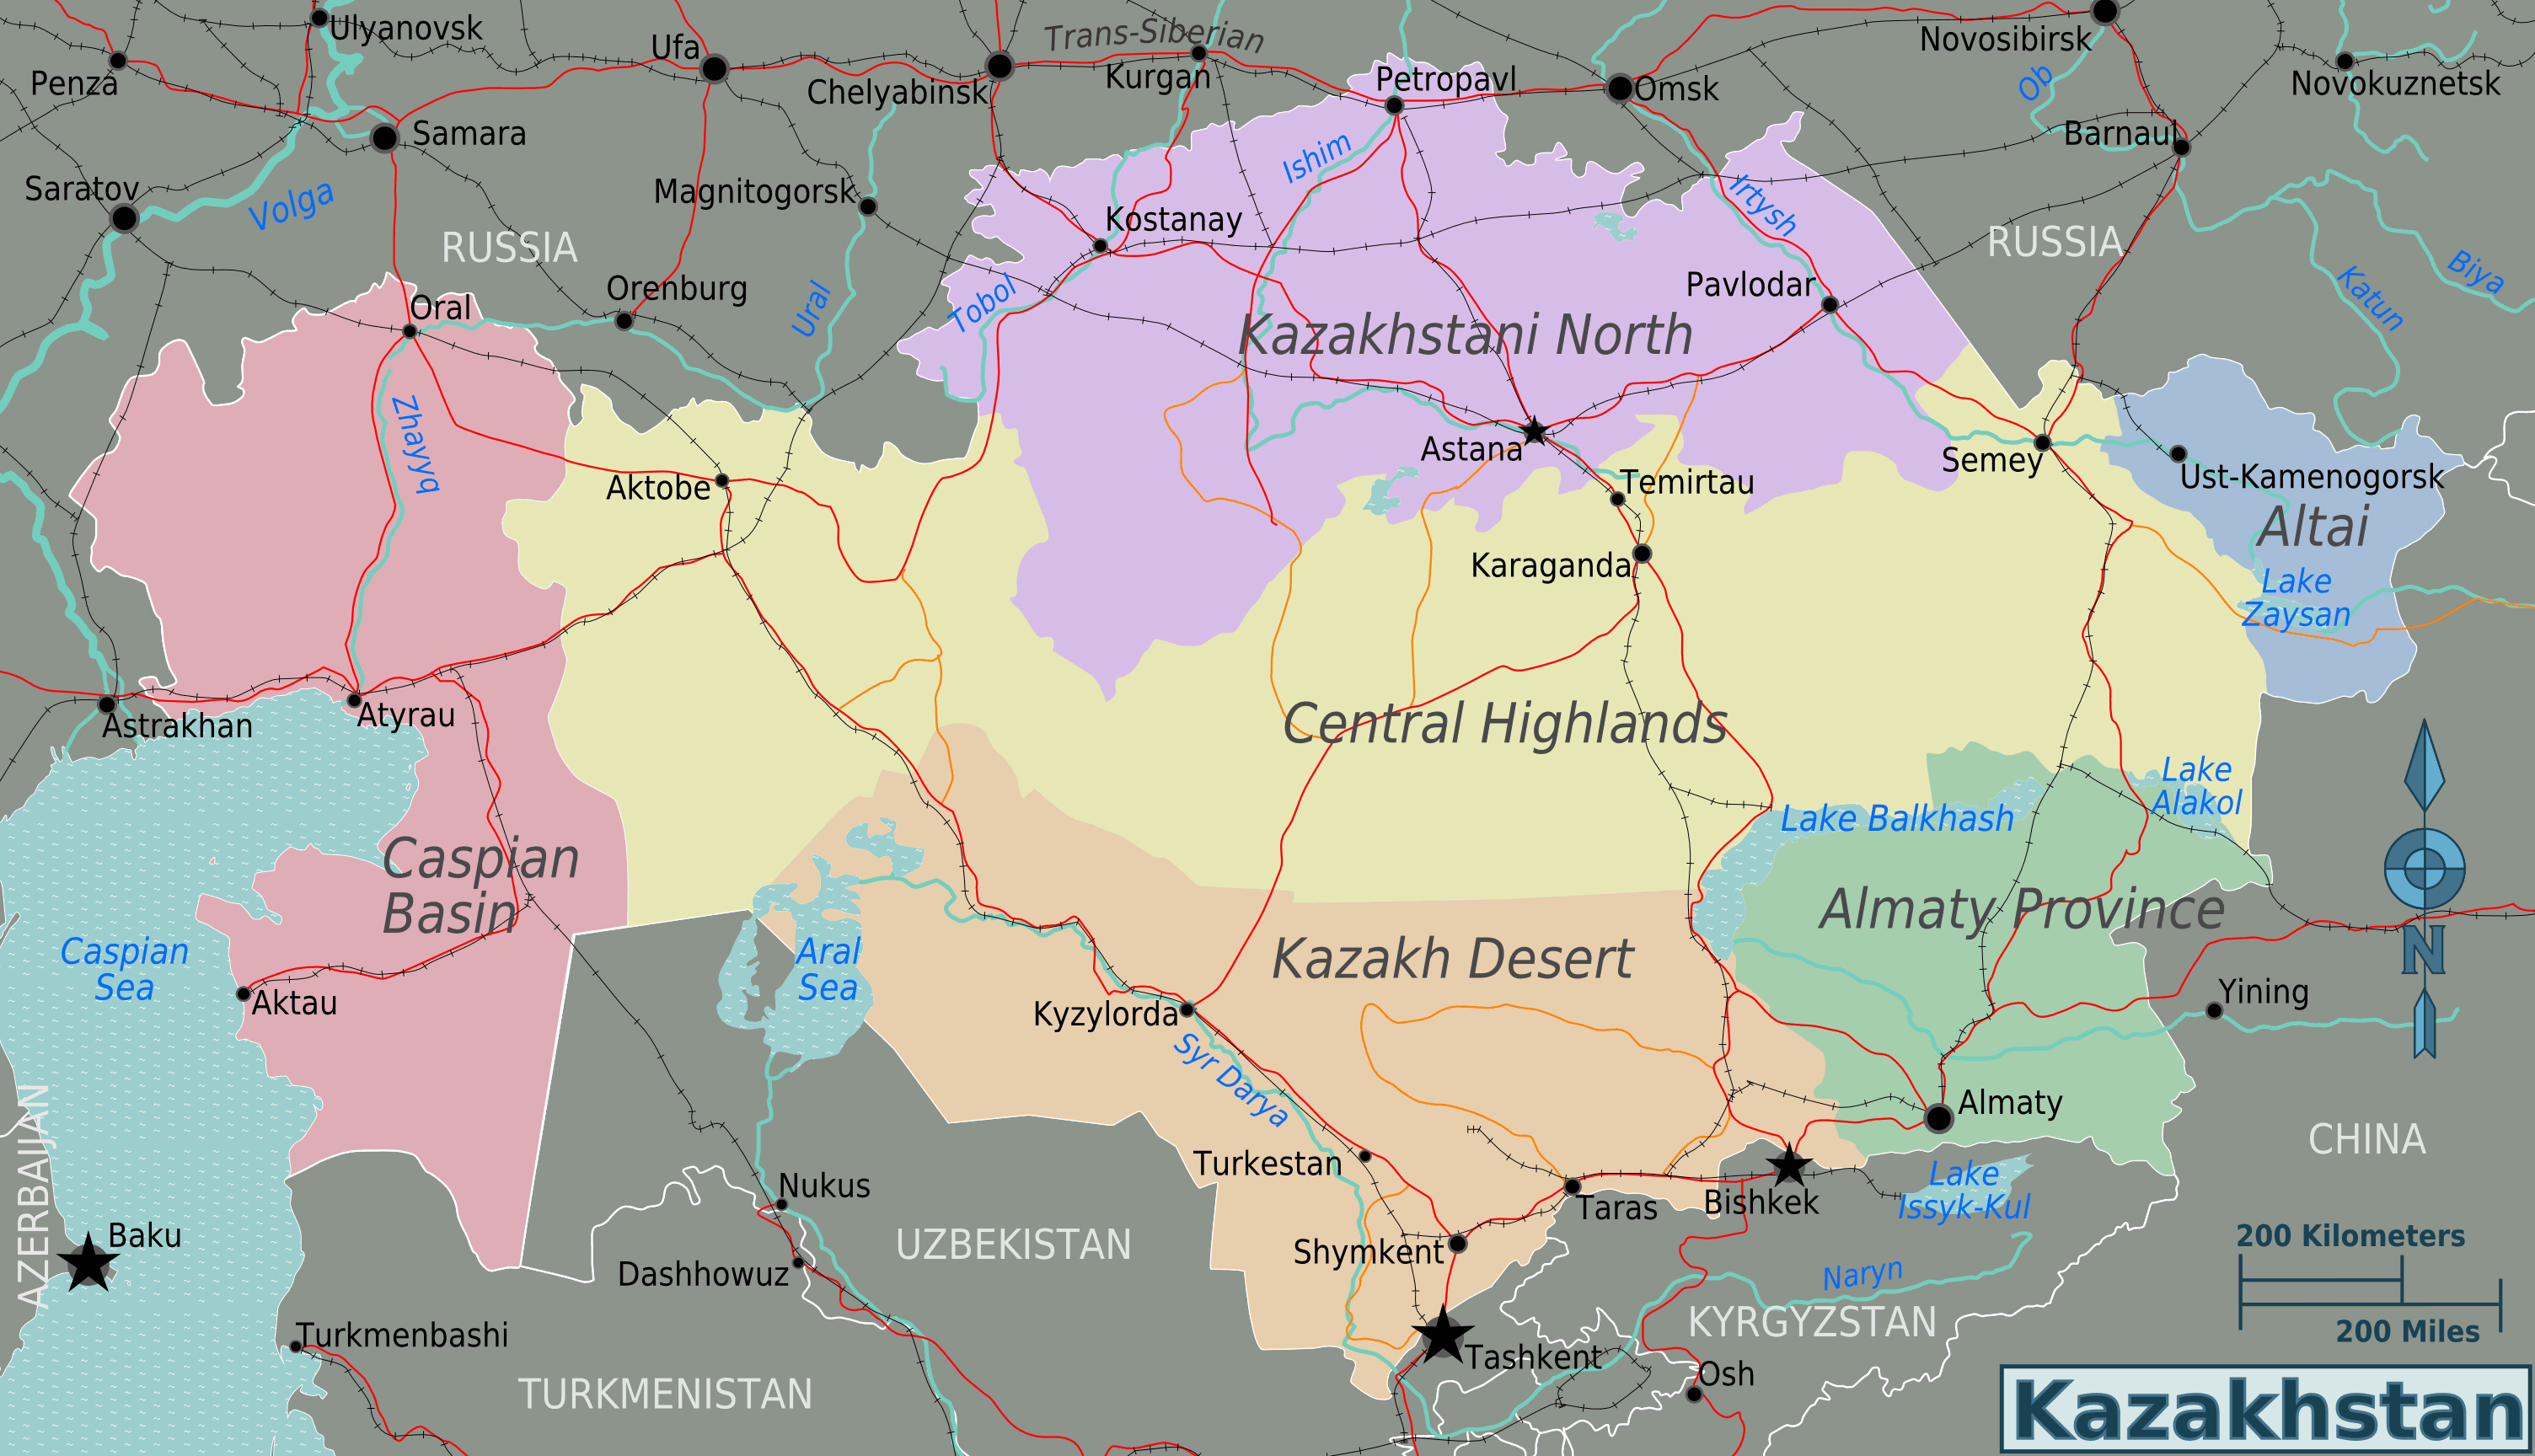 large_detailed_road_and_administrative_map_of_kazakhstan_regions